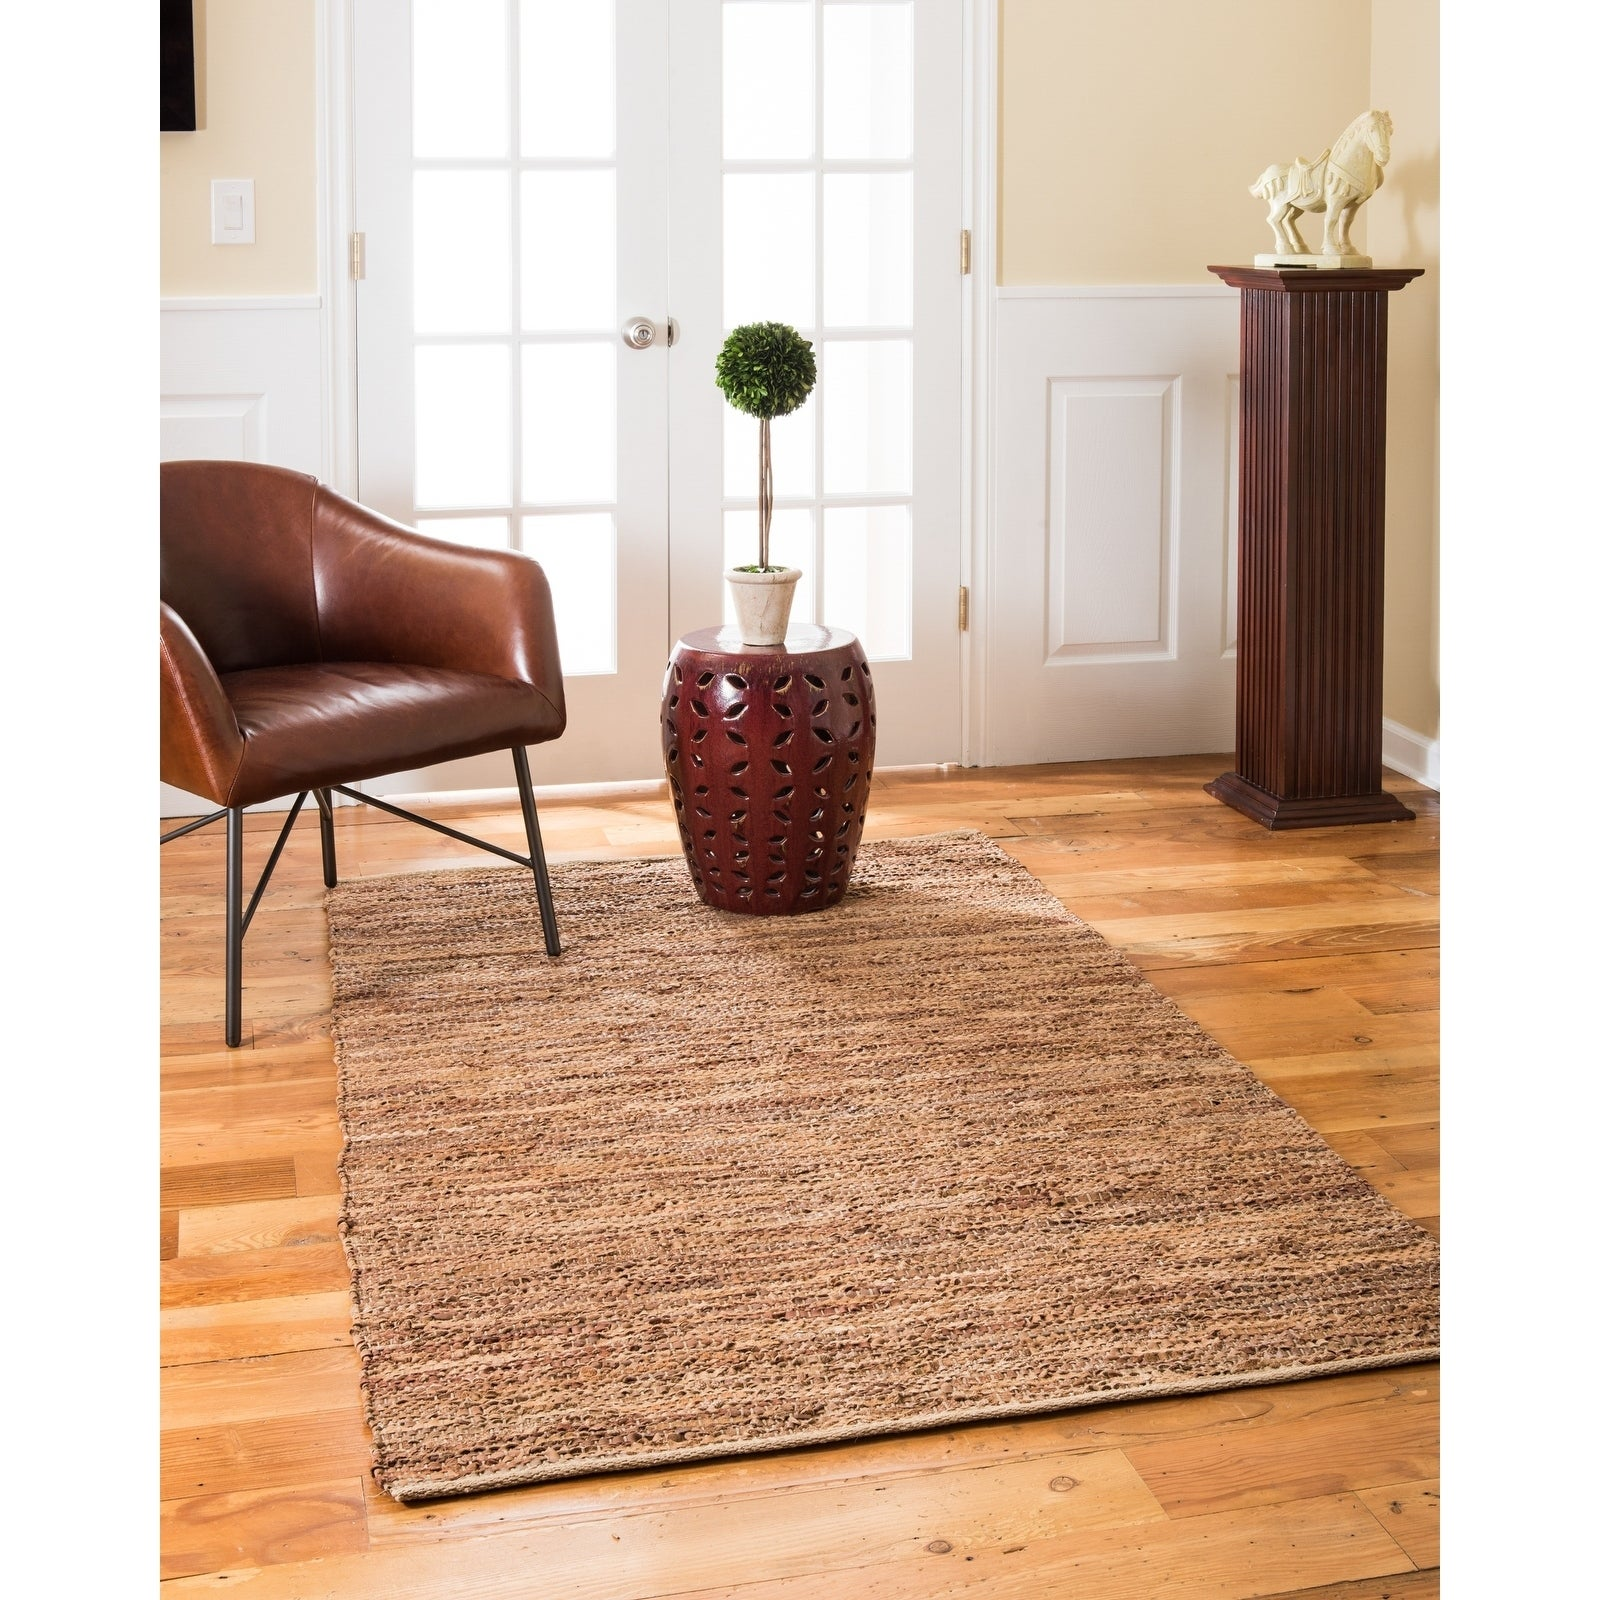 NaturalAreaRugs Adore Leather Rug Hand-Loomed, 9 x 12 - 9 x 12 (9 x 12 - Brown)